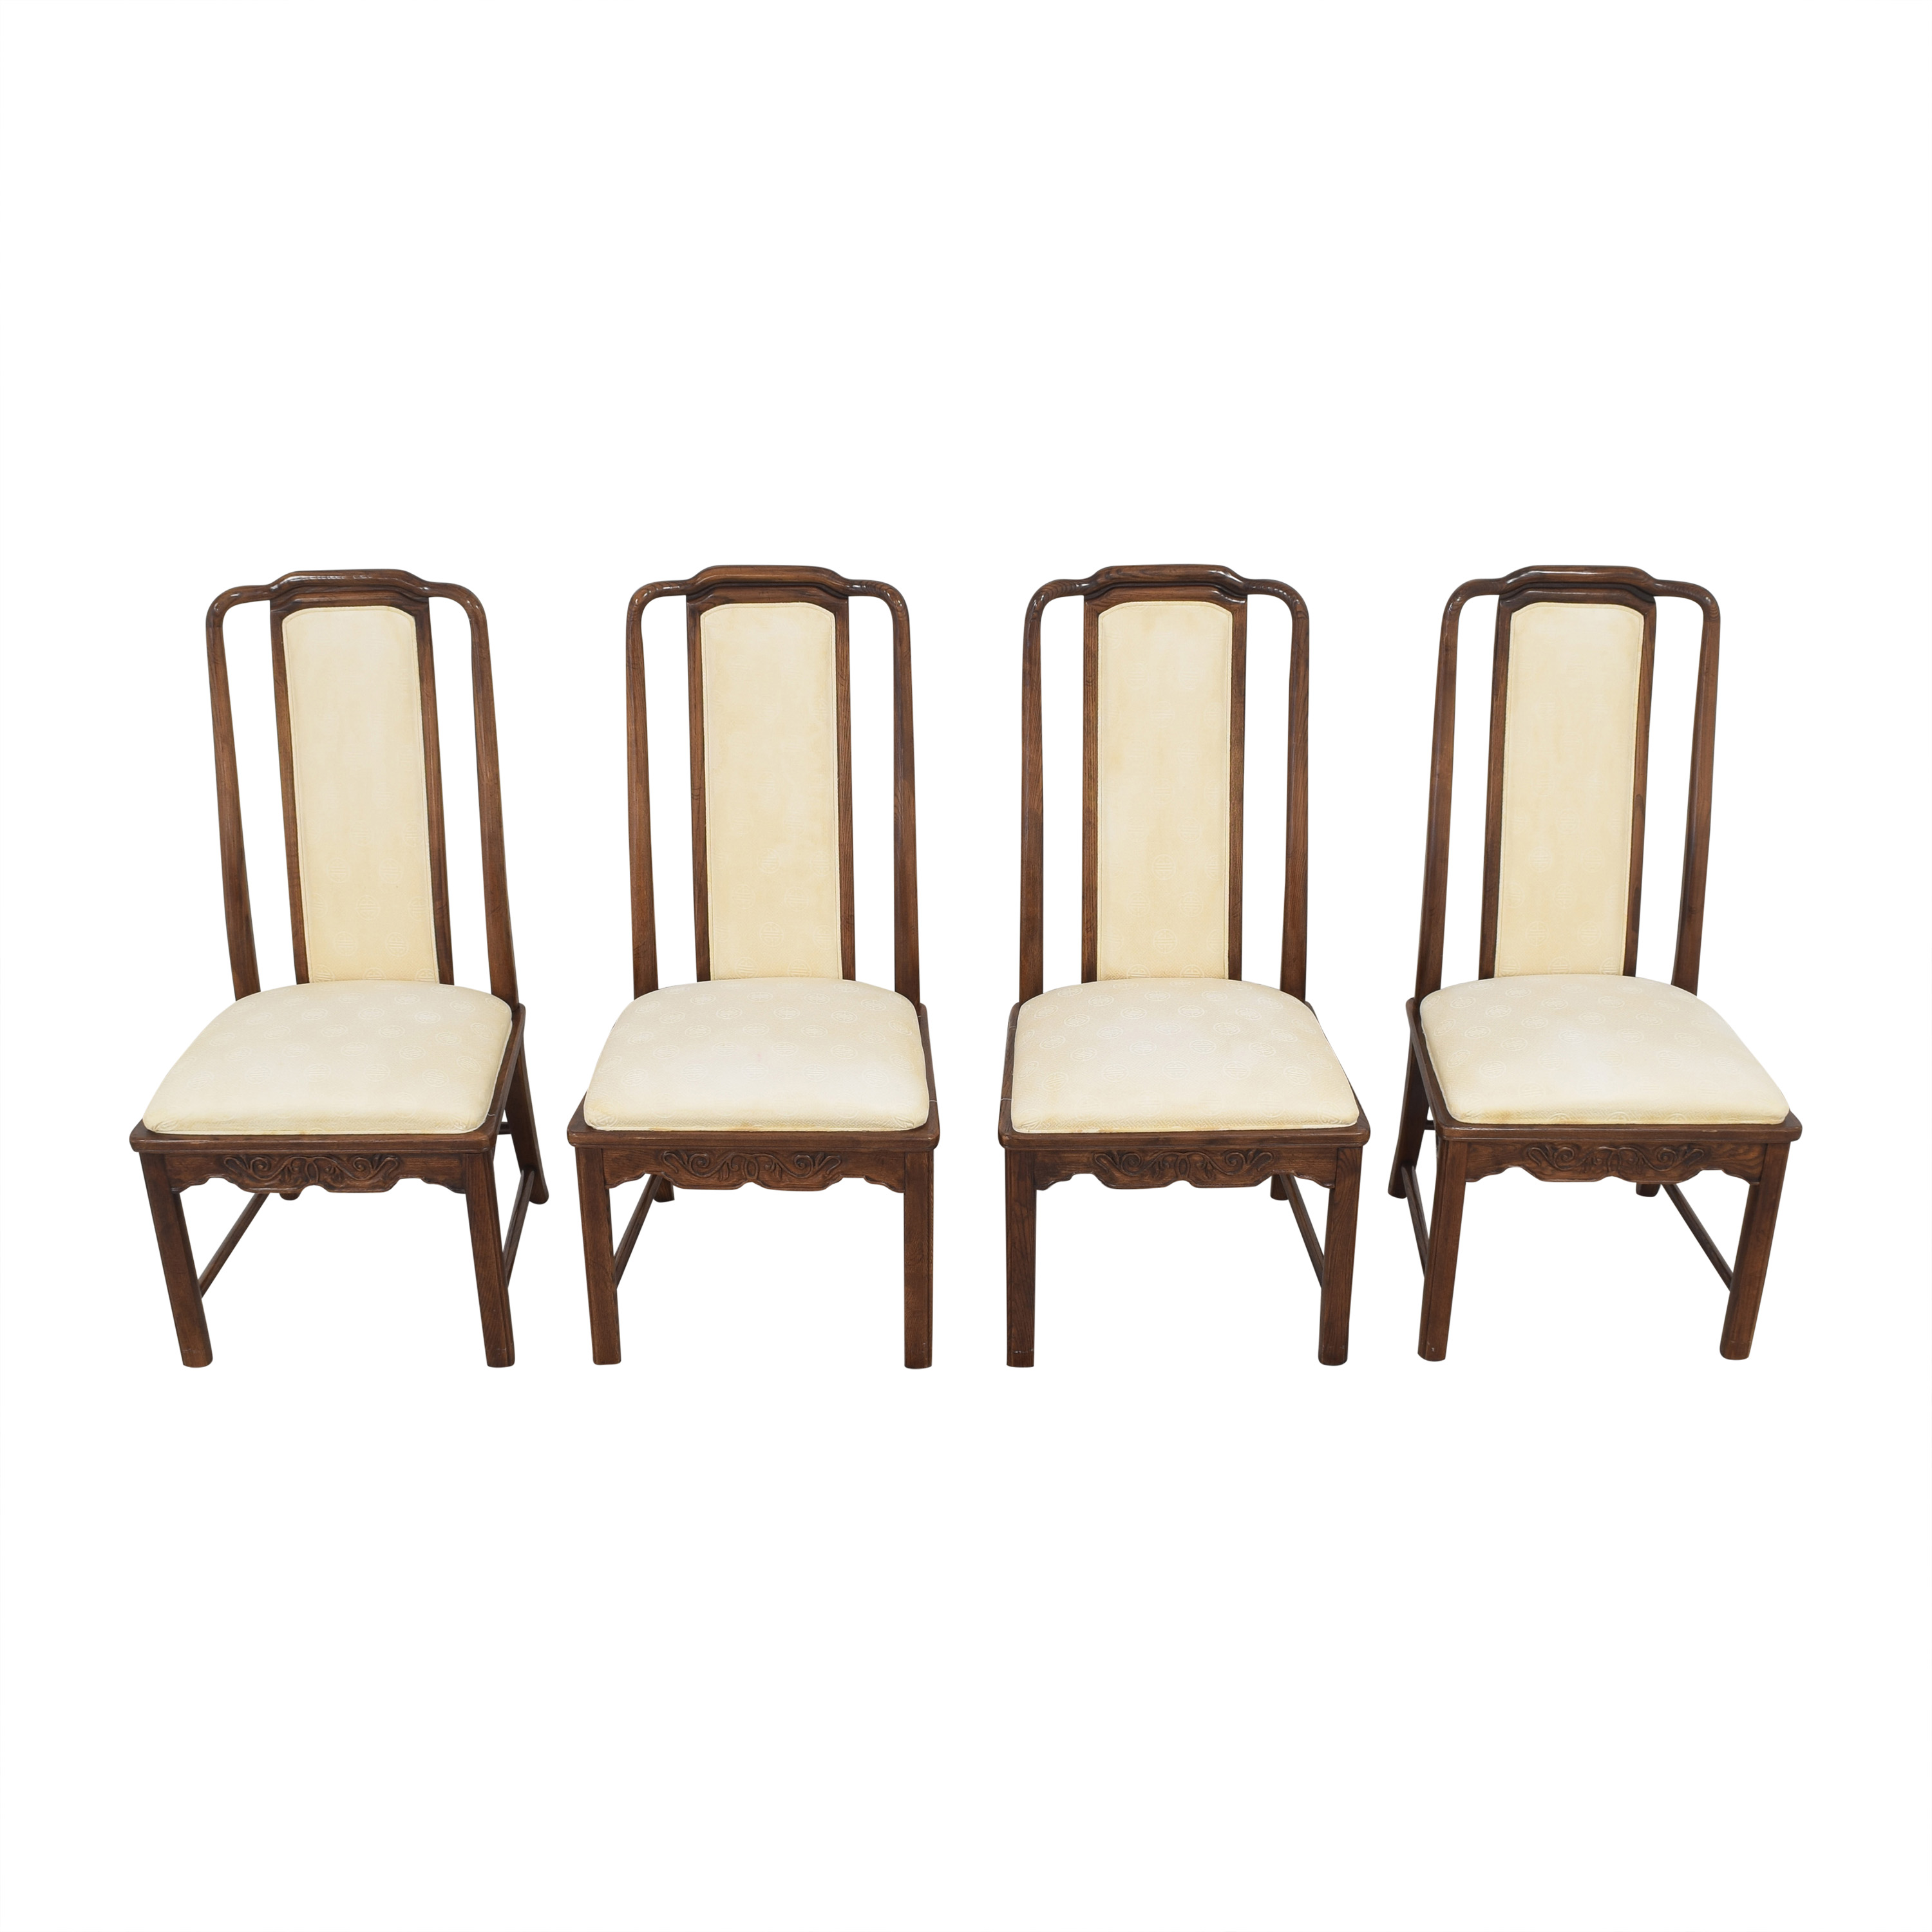 buy Unique Furniture Makers High Back Dining Chairs Unique Furniture Makers